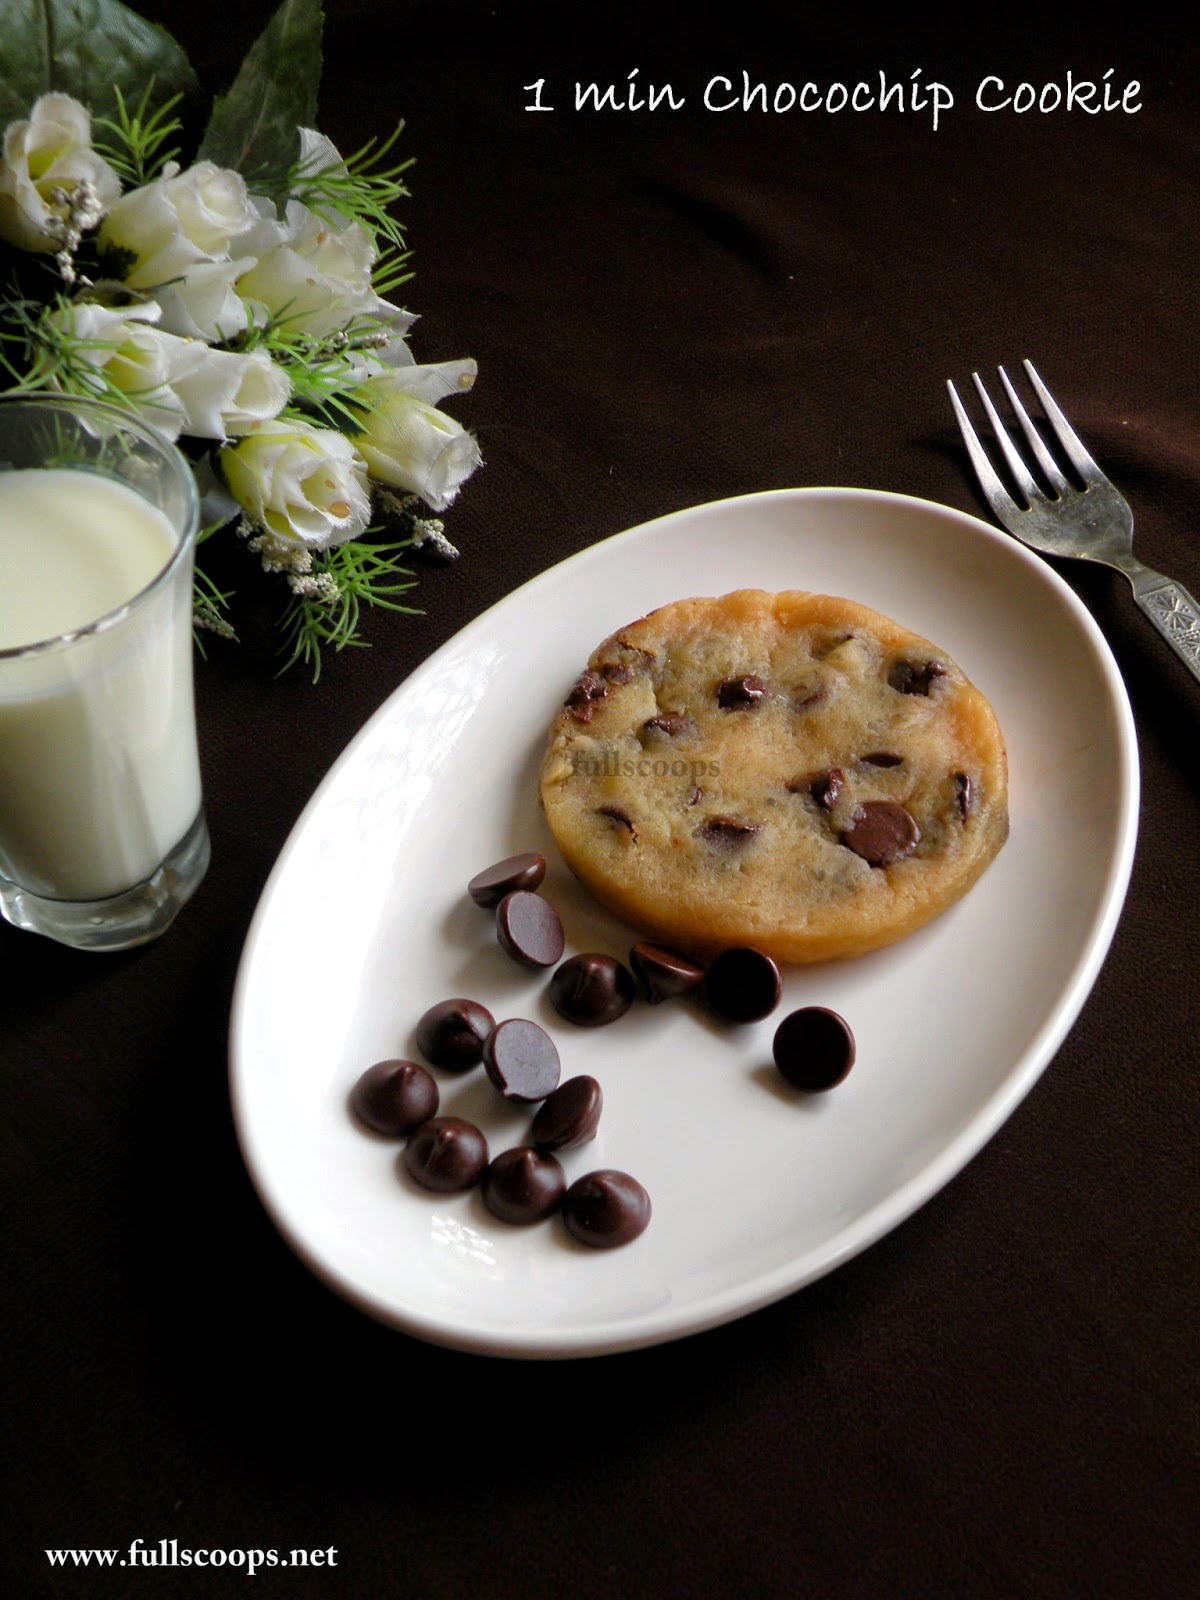 1 min Eggless Chocolate Chip Cookie